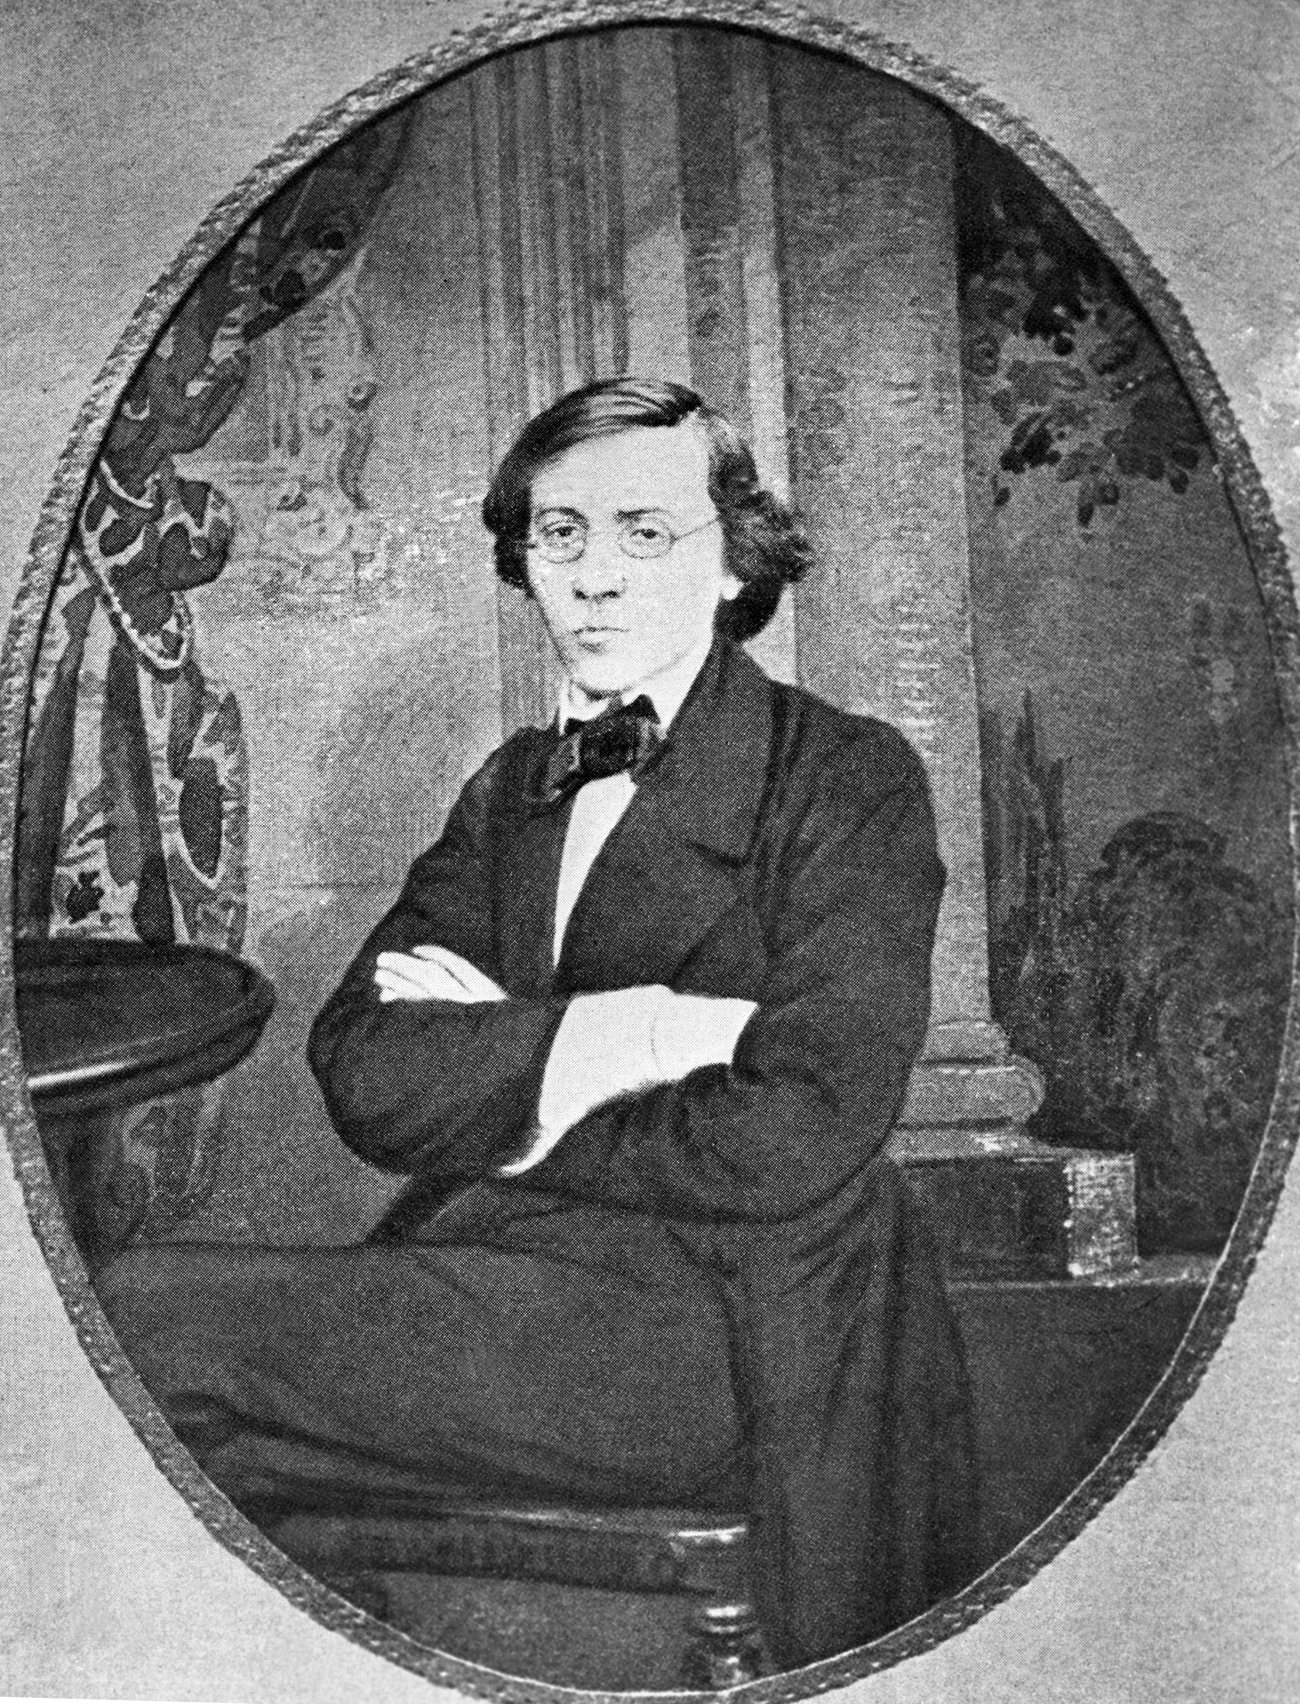 Nikolai Chernyshevsky in youth.